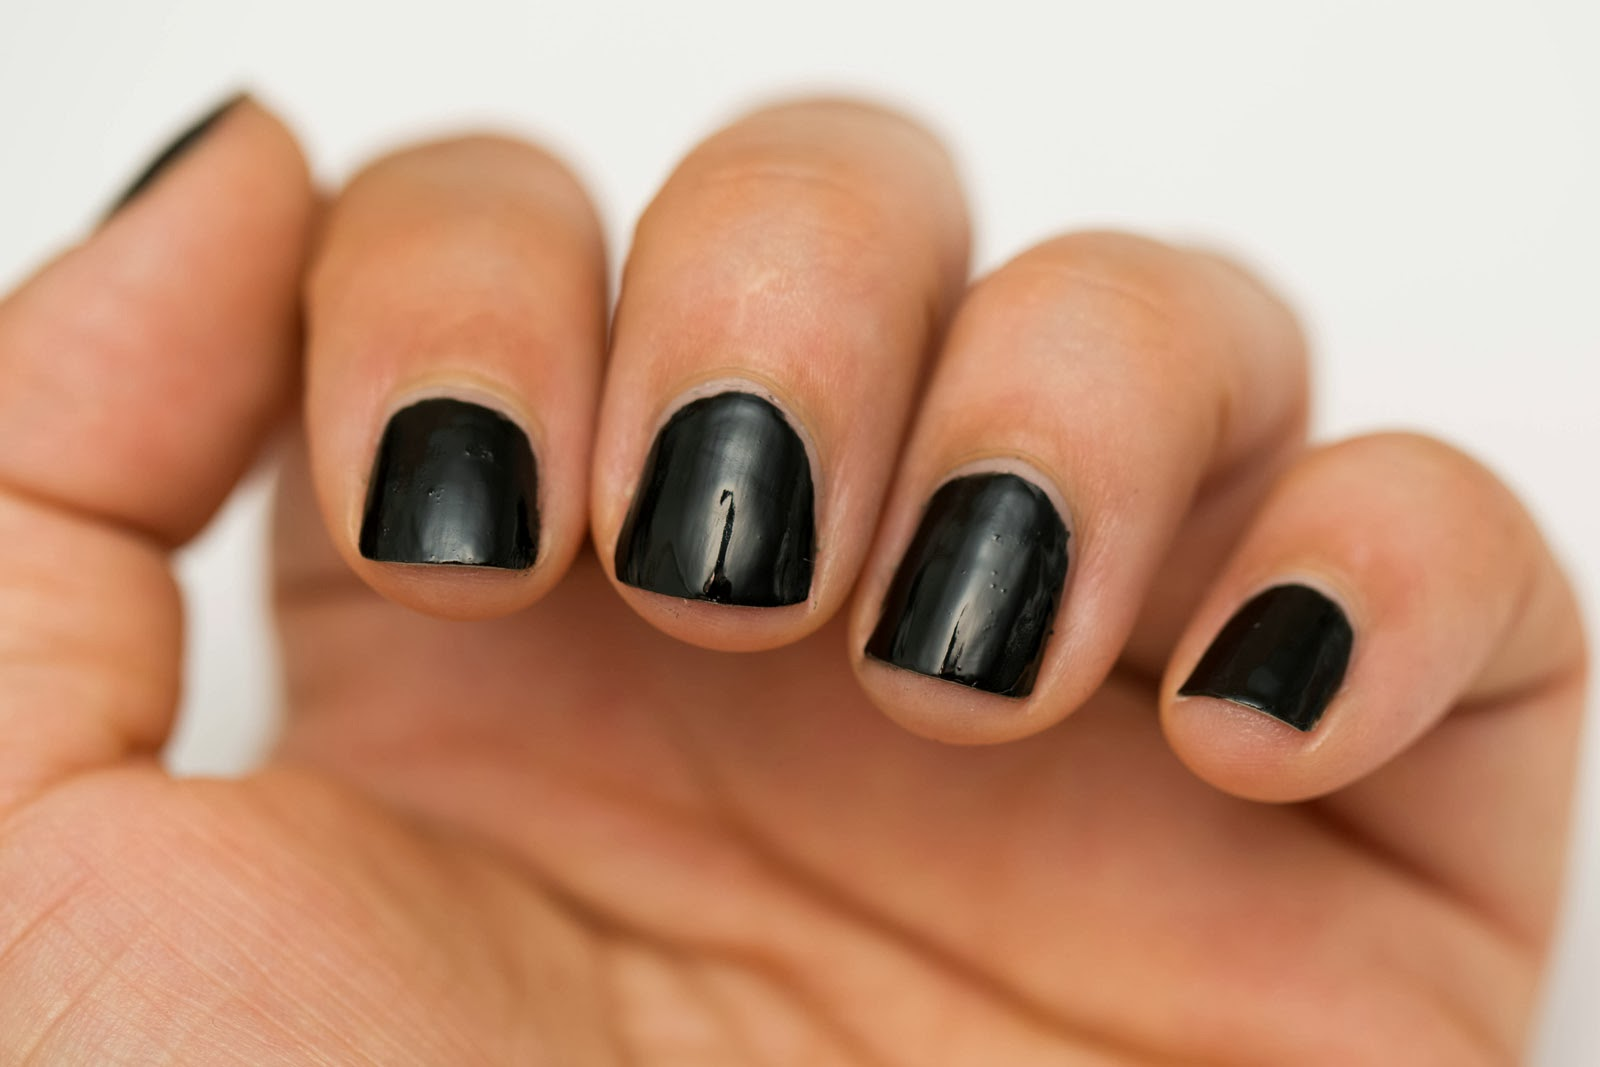 Beauty by arielle quick and easy halloween nail art for short nails quick and easy halloween nail art for short nails prinsesfo Image collections